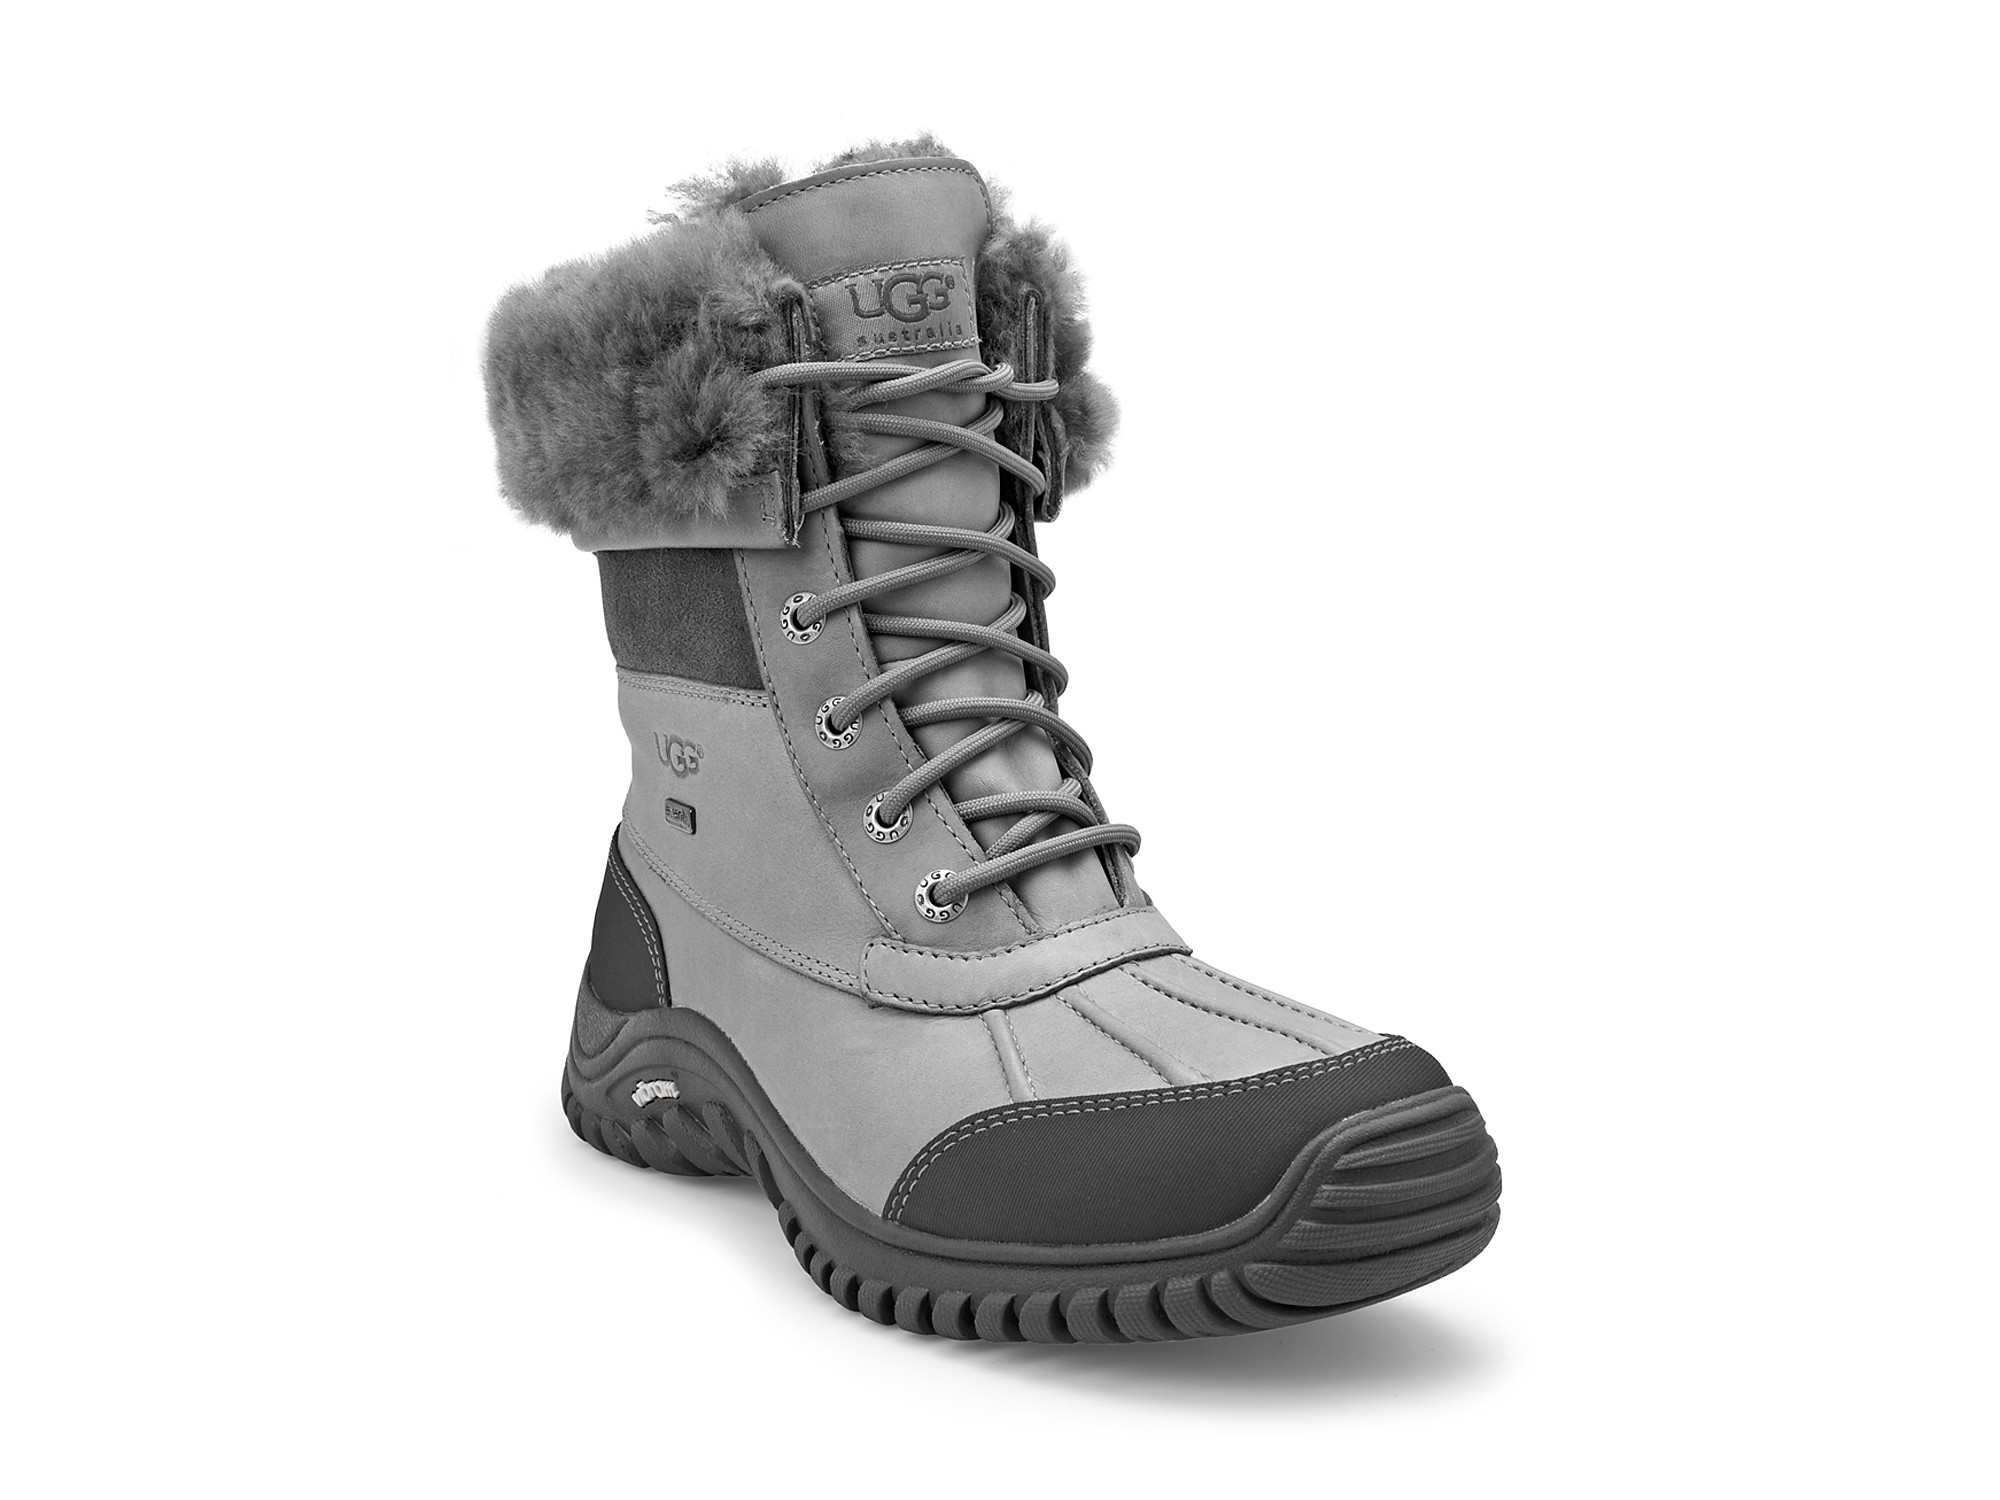 26df3299c28 Ugg Winter Boots Snow - cheap watches mgc-gas.com